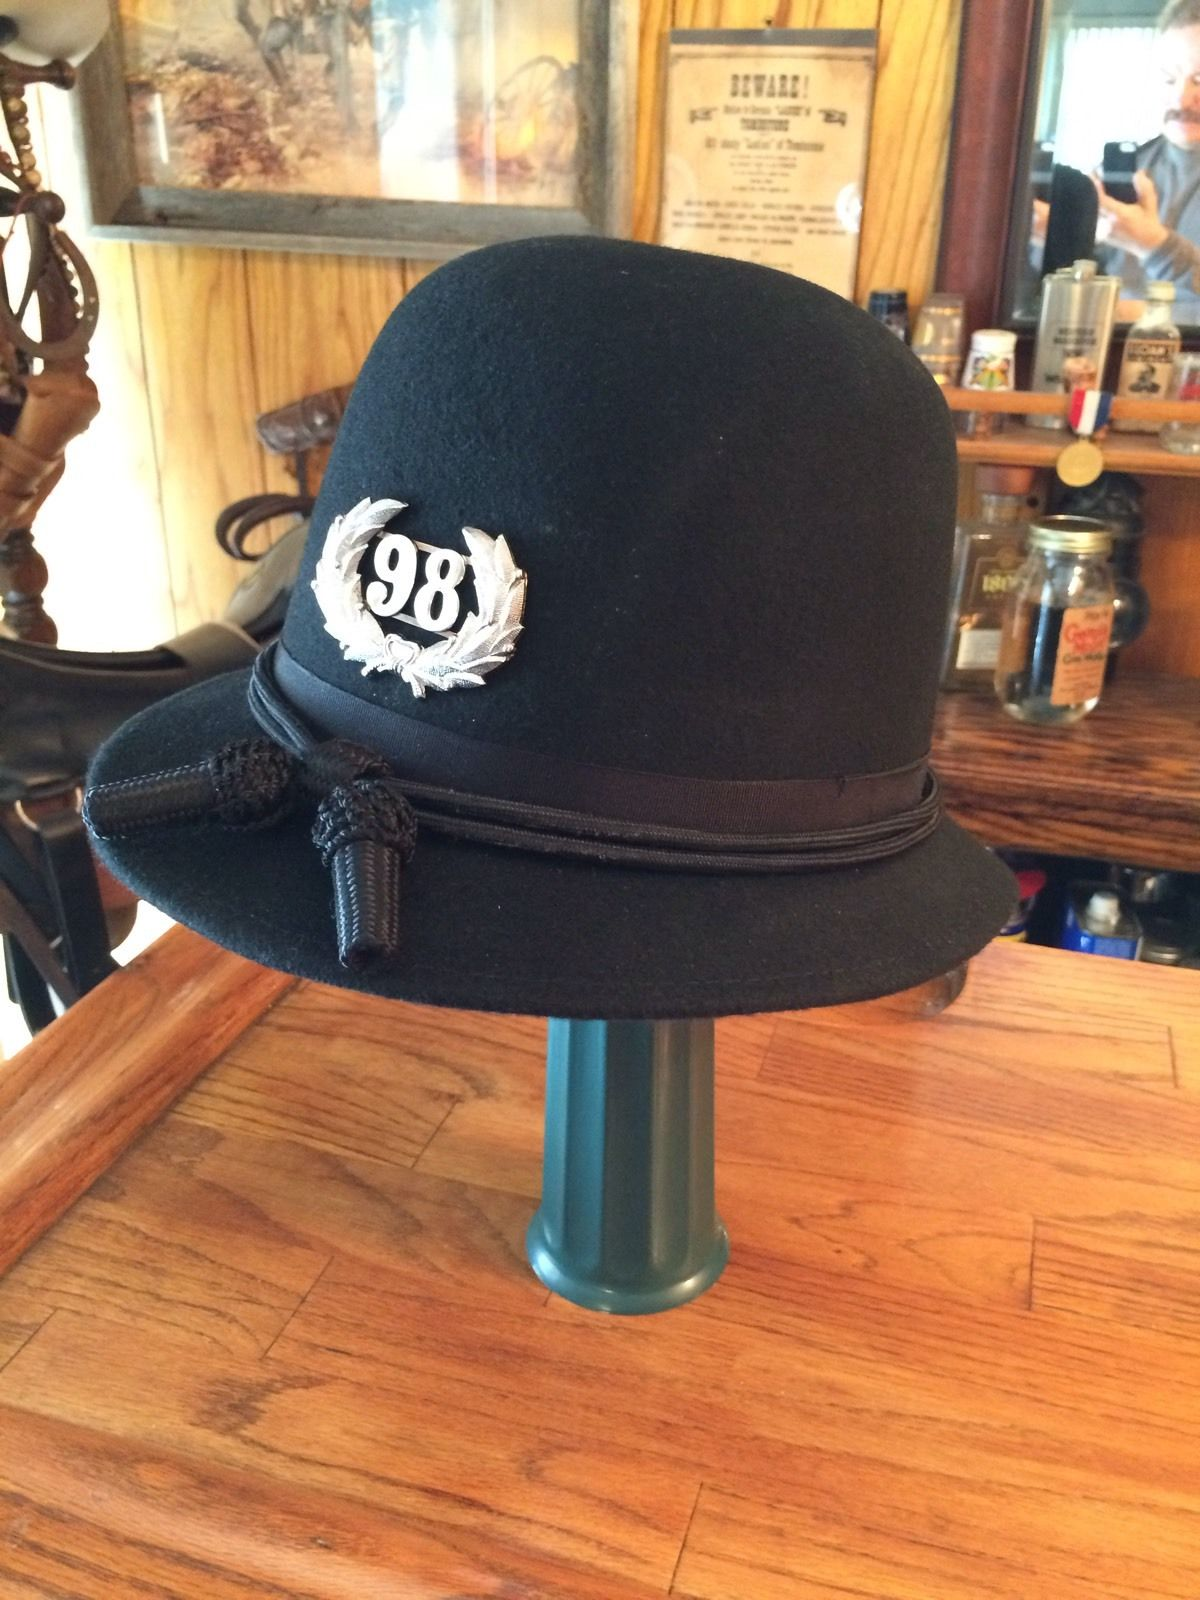 BSL 1890's REPRODUCTION LAPD HAT WITH HAT CORD